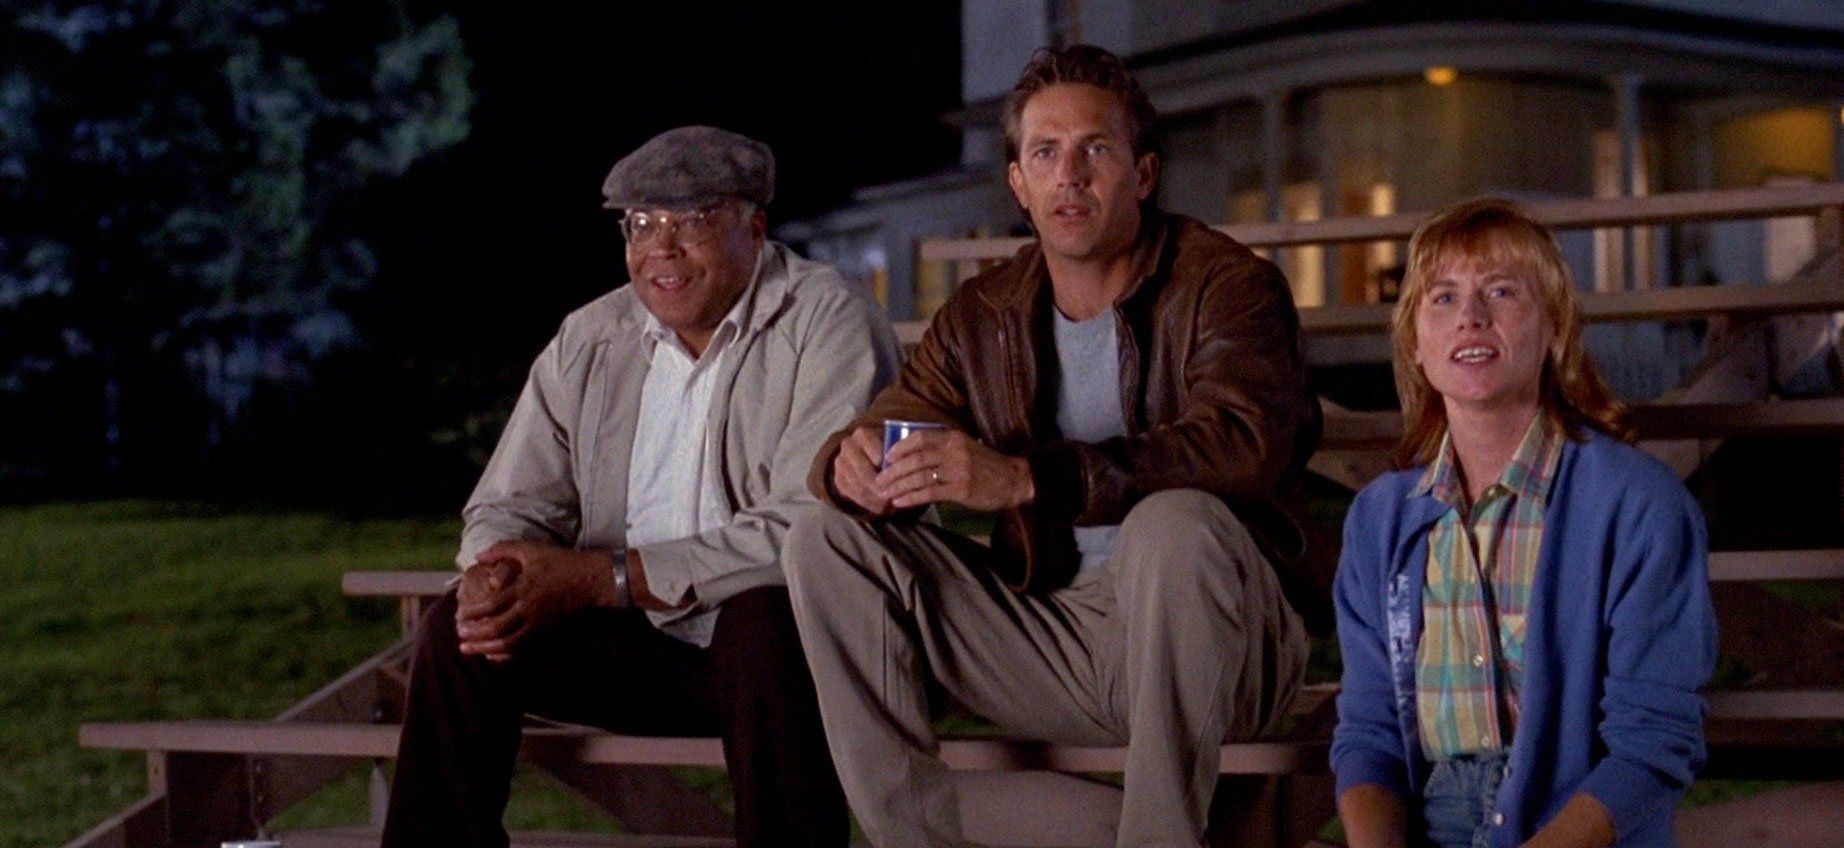 g5 22 Things You Might Not Have Realised About Field Of Dreams